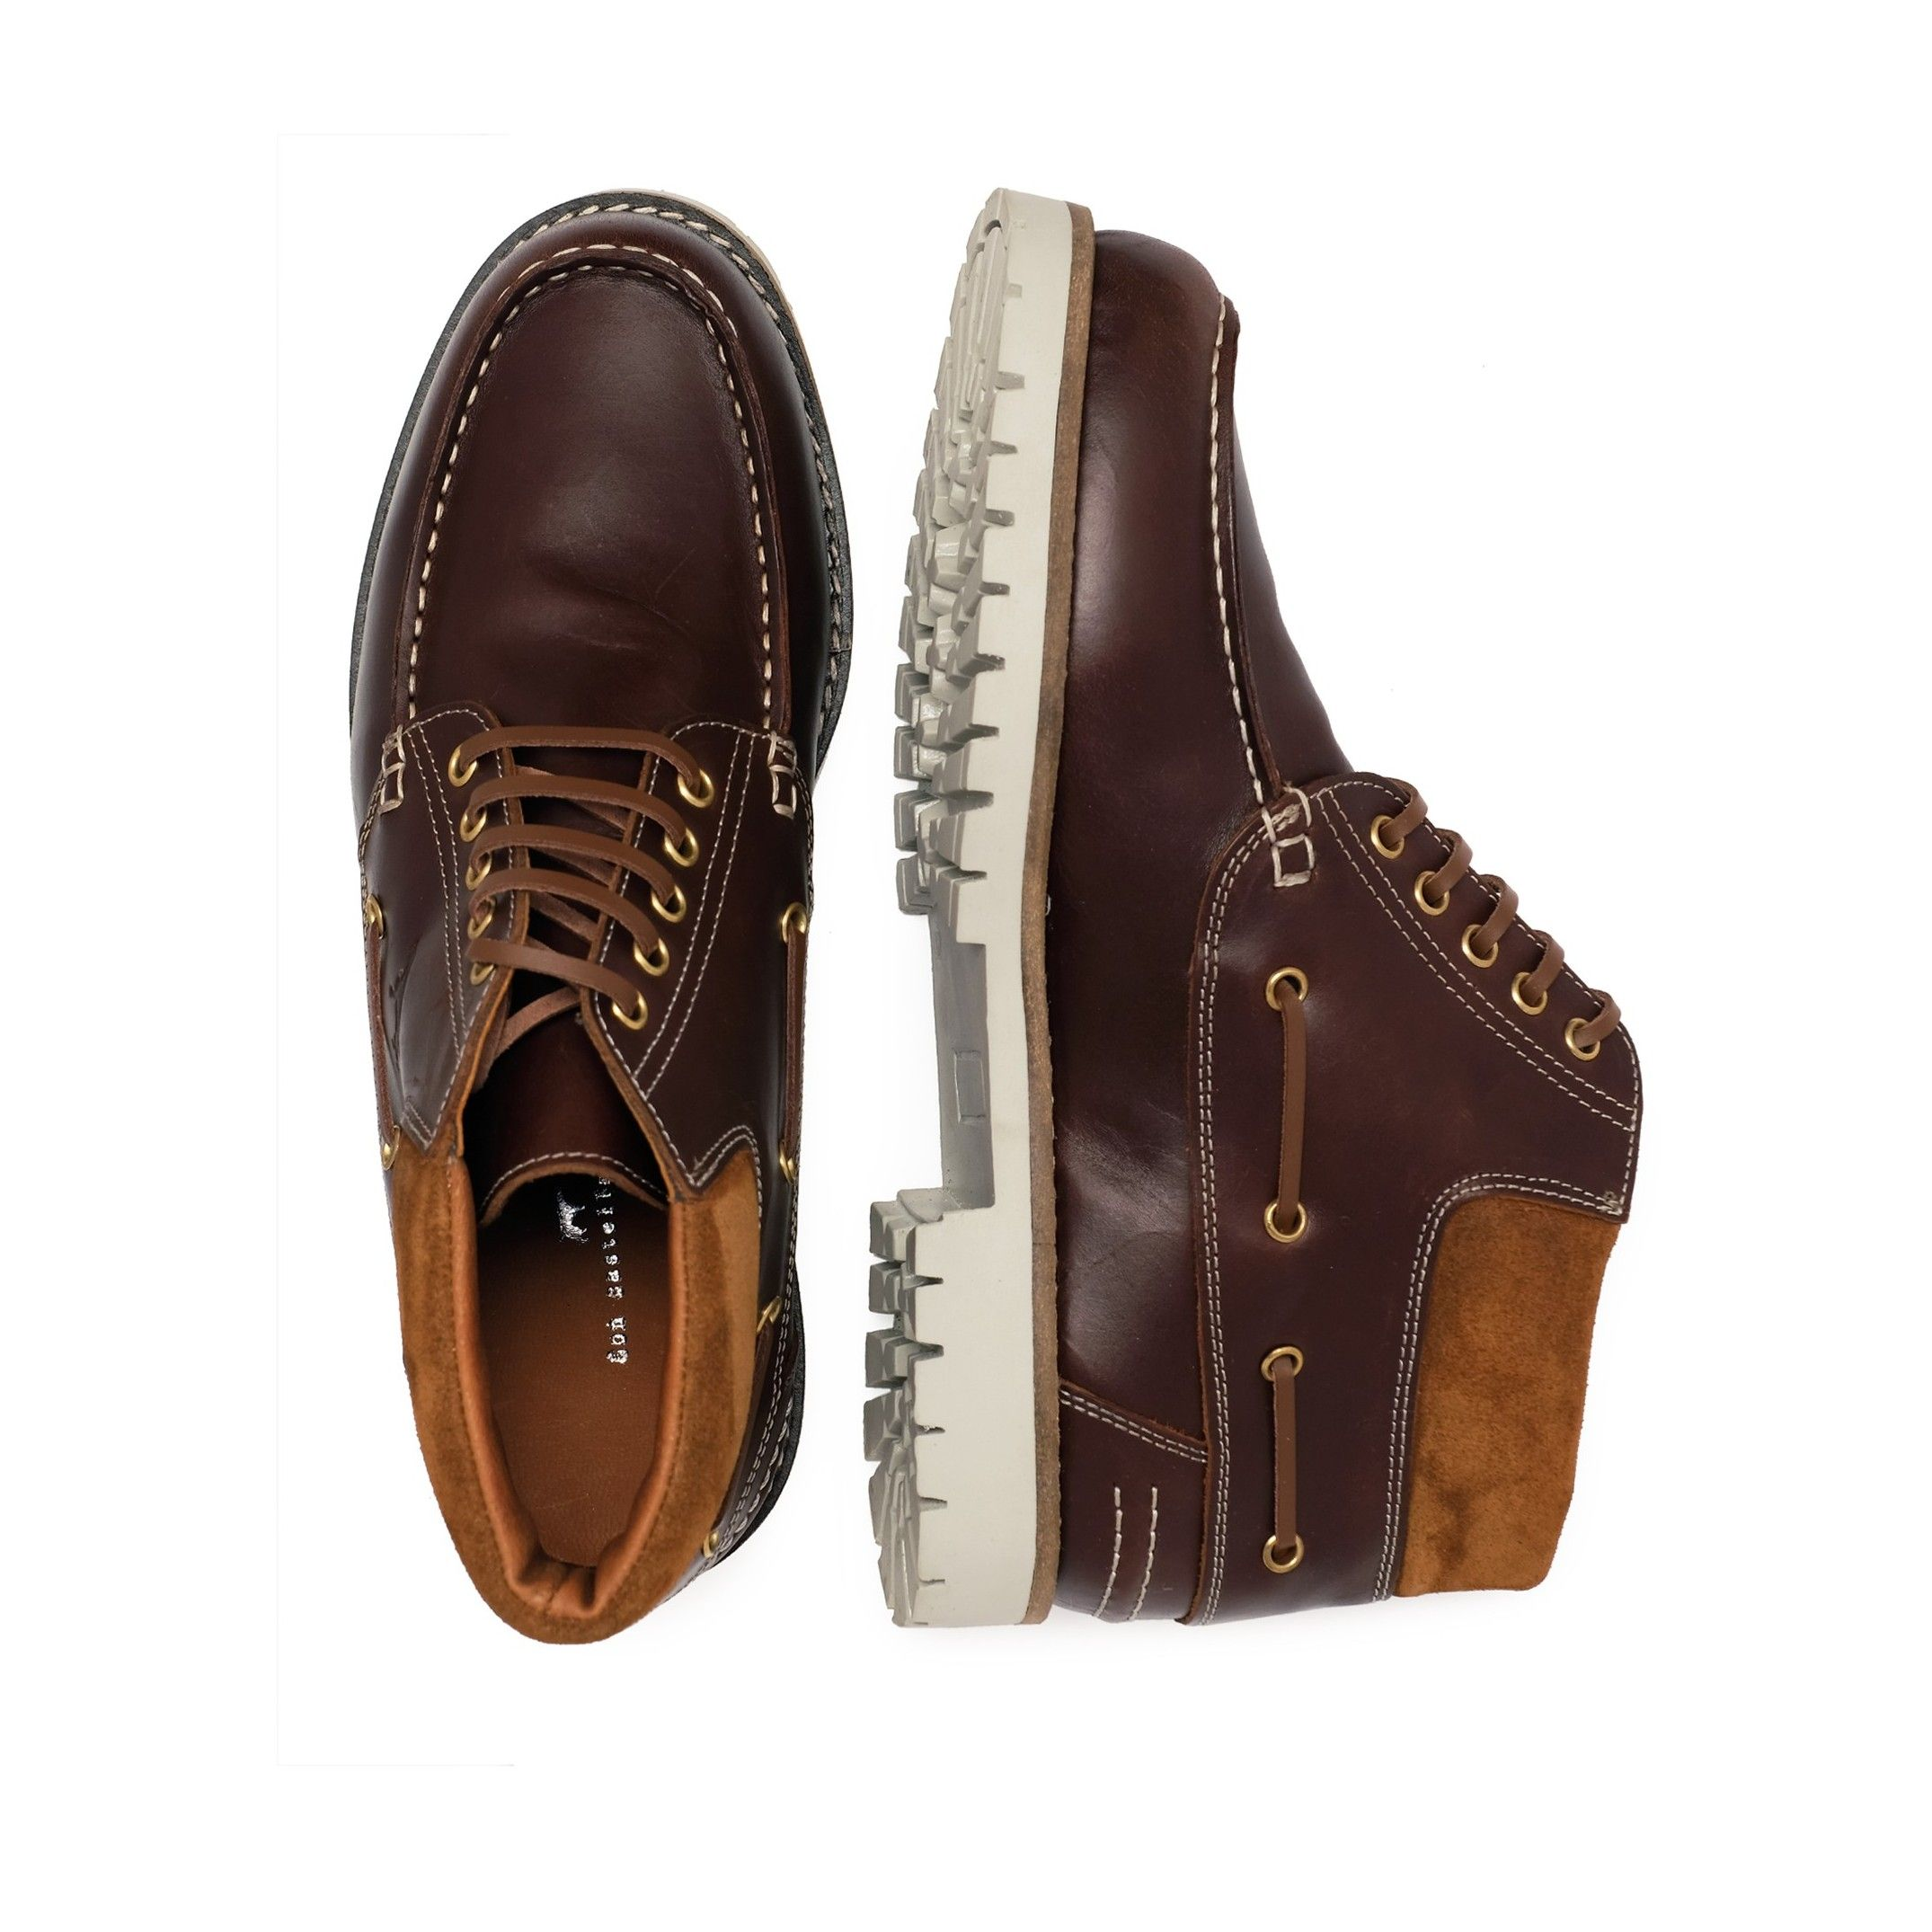 Leather Boots Laces Men's Winter Brown